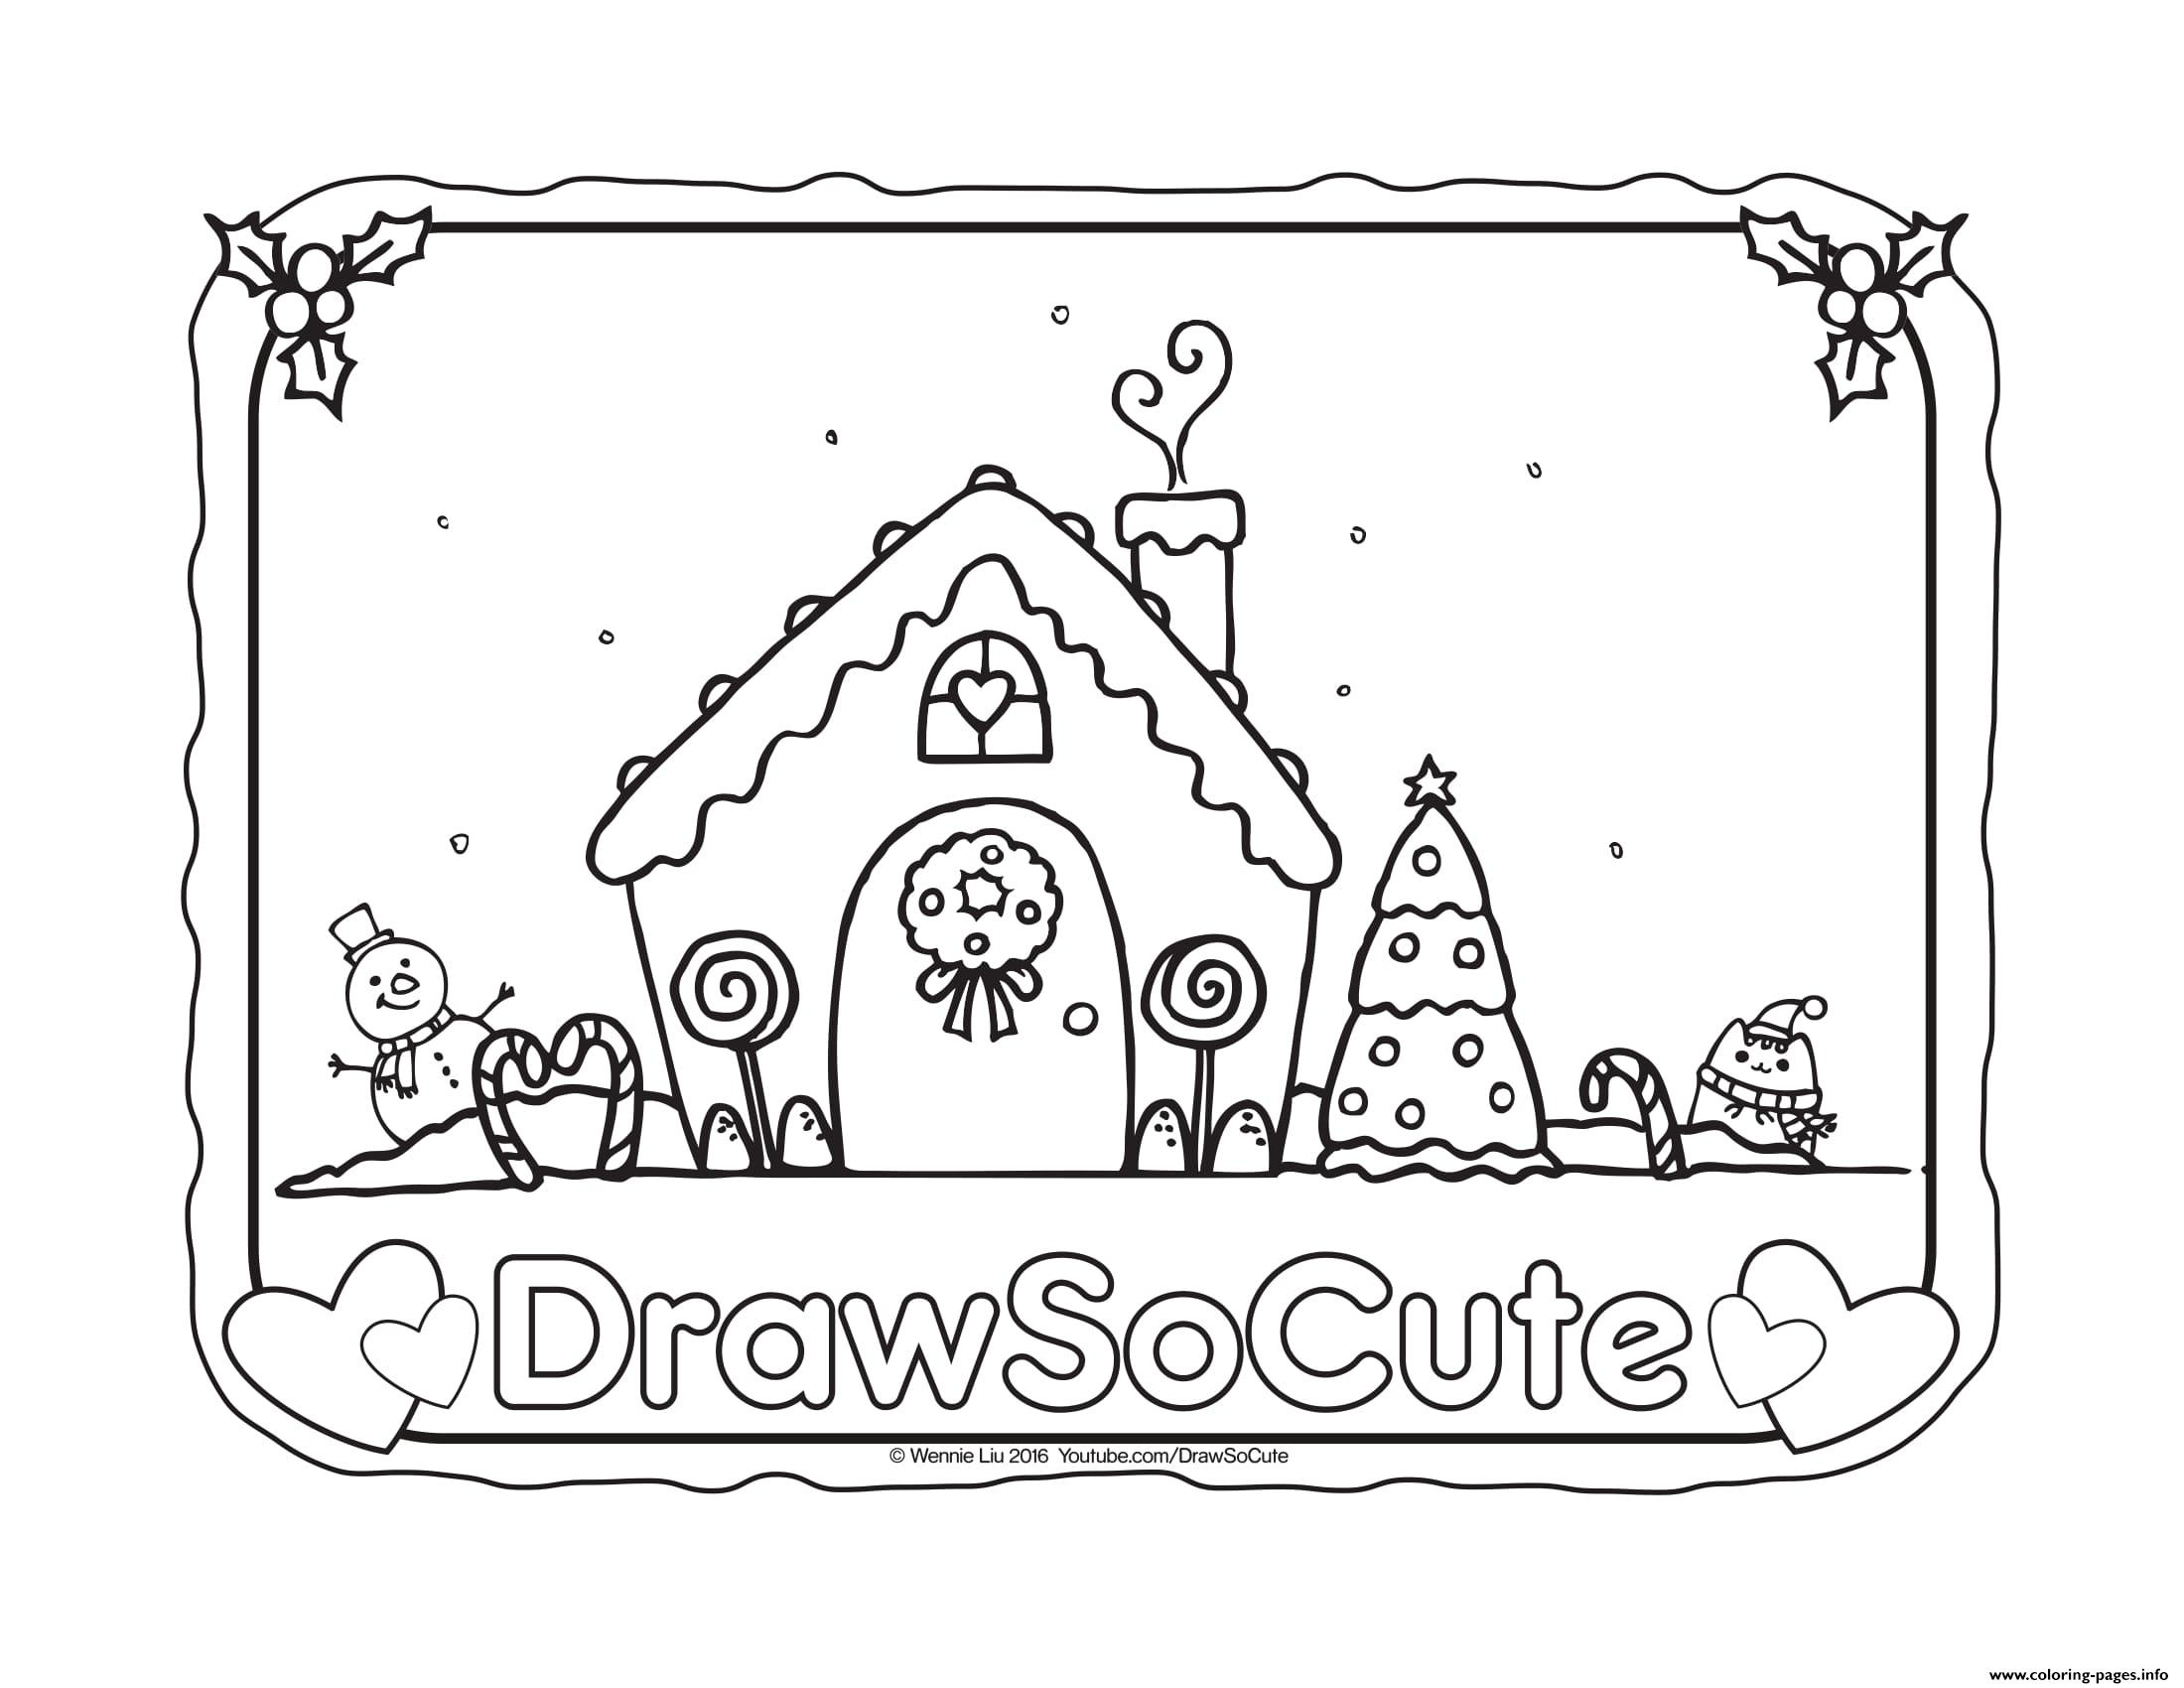 Gingerbread house draw so cute coloring pages printable for Draw so cute coloring pages